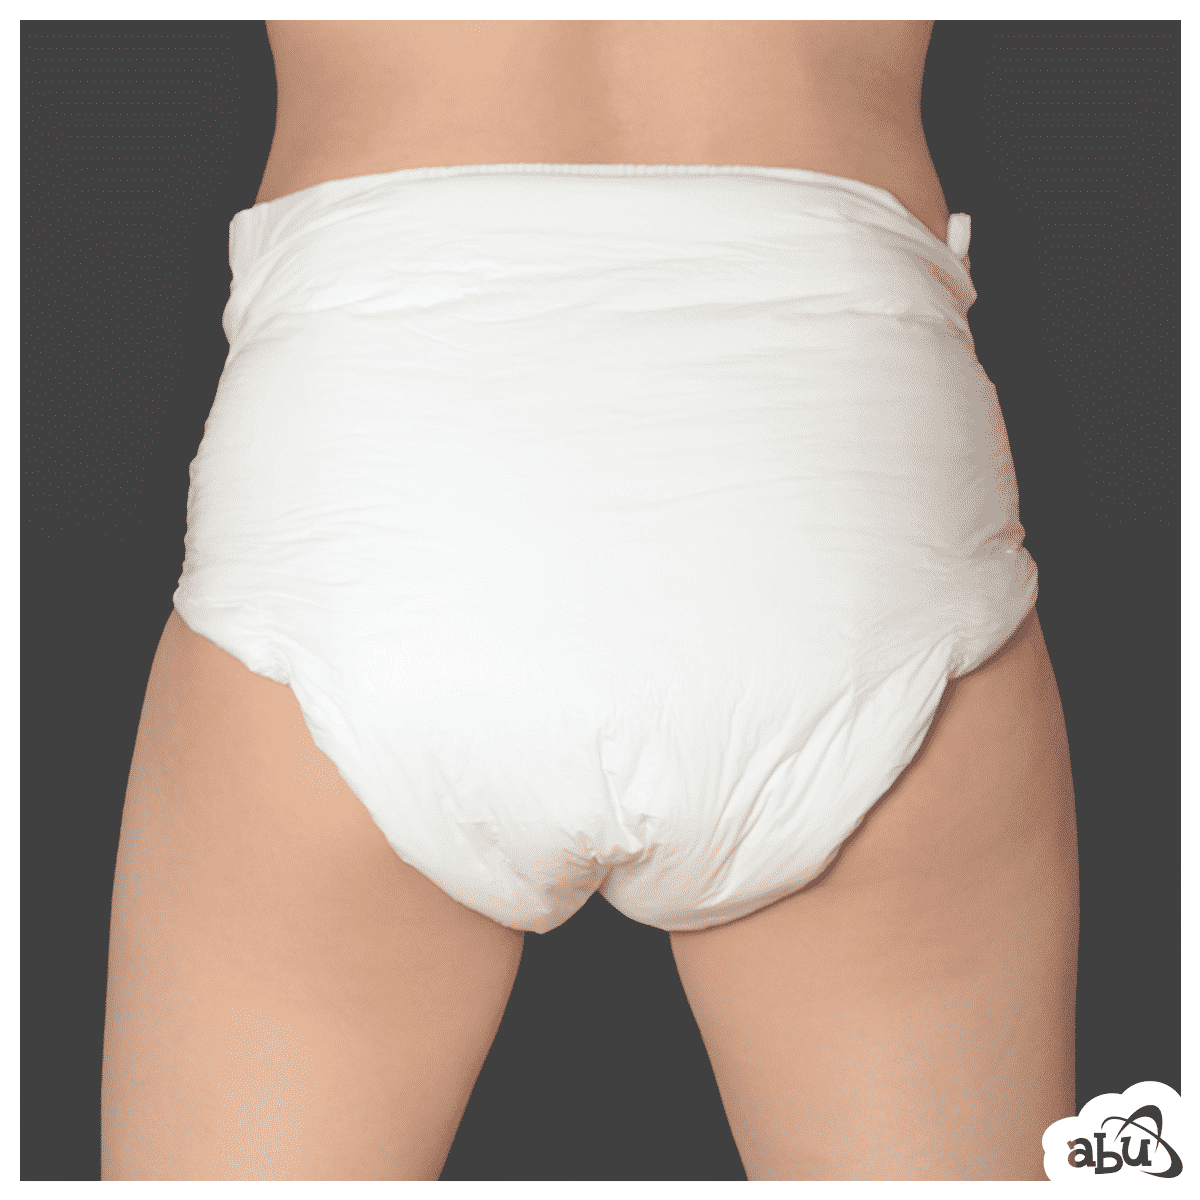 ABUniverse ABU Simple Ultra Diapers ABDL - Pack of 10 9